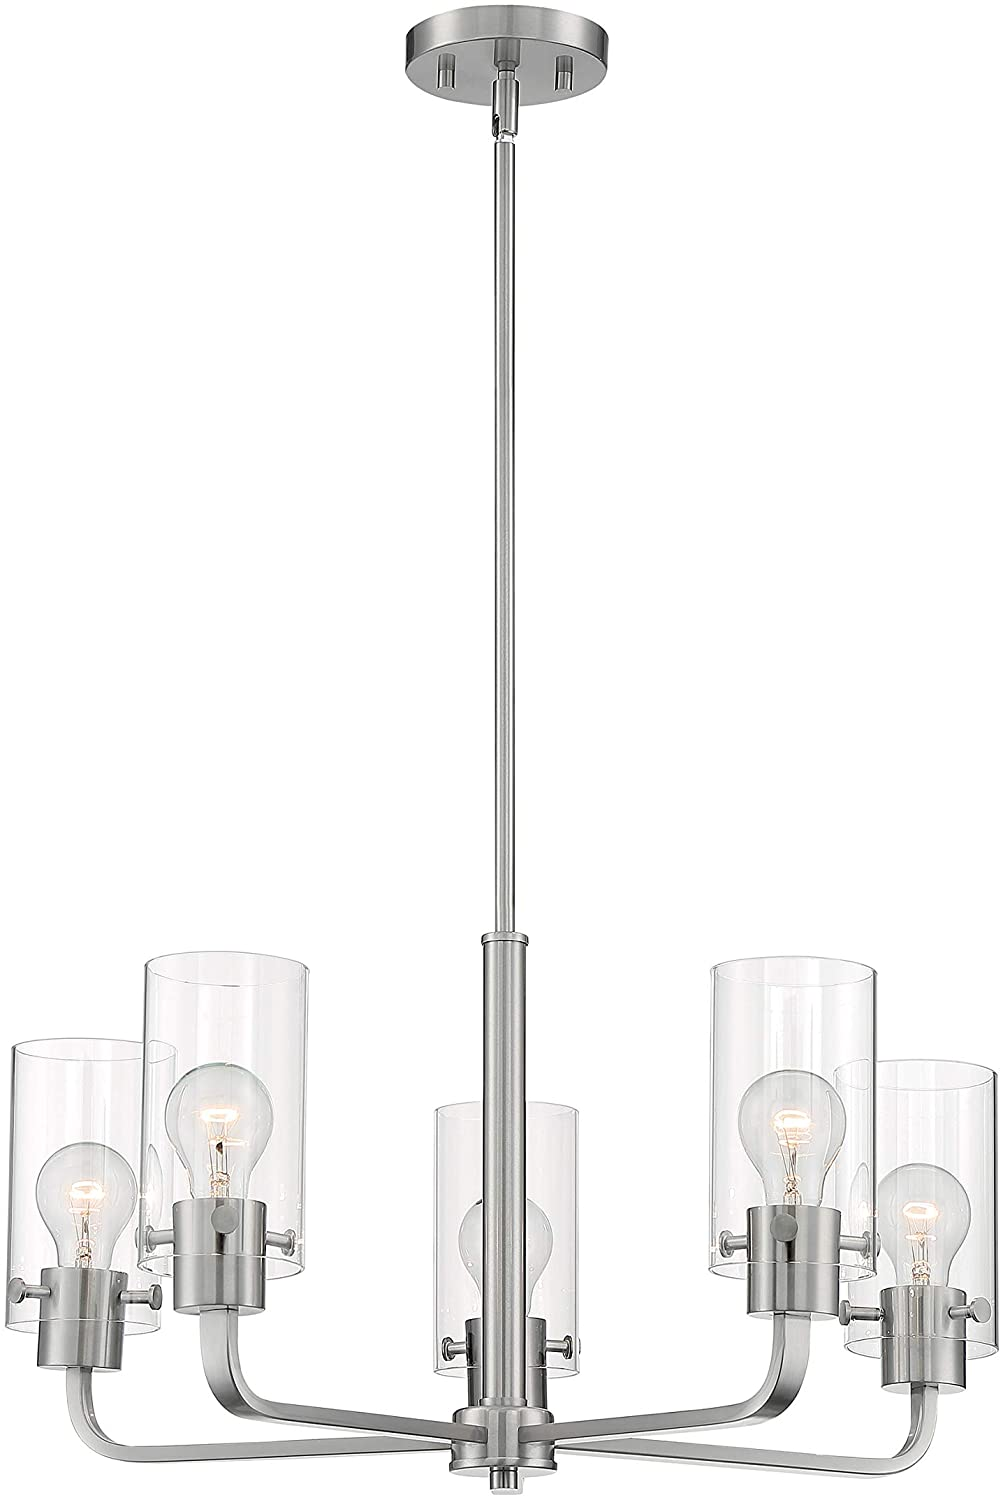 SOMMERSET - 5 LIGHT CHANDELIER WITH CLEAR GLASS - BRUSHED NICKEL FINISH #60-7175